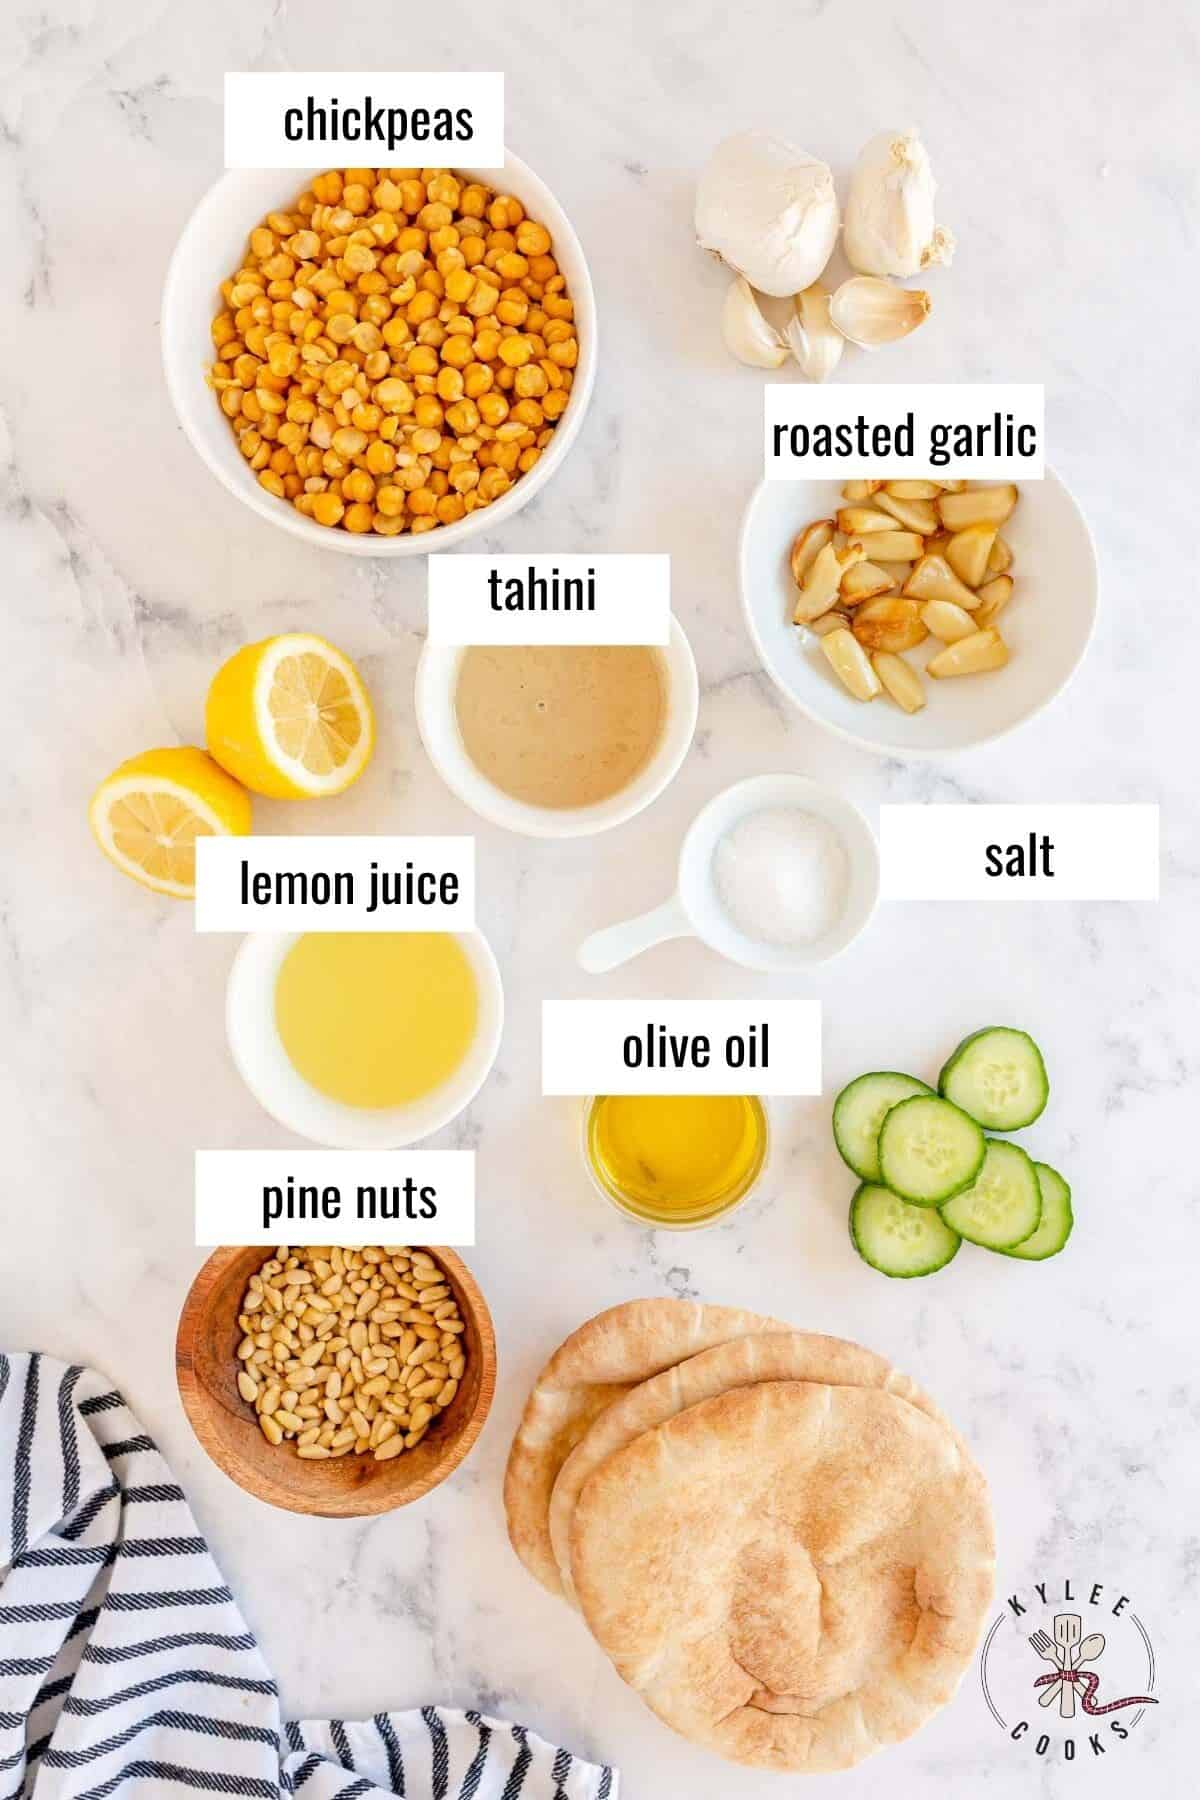 ingredients to make hummus laid out and labeled